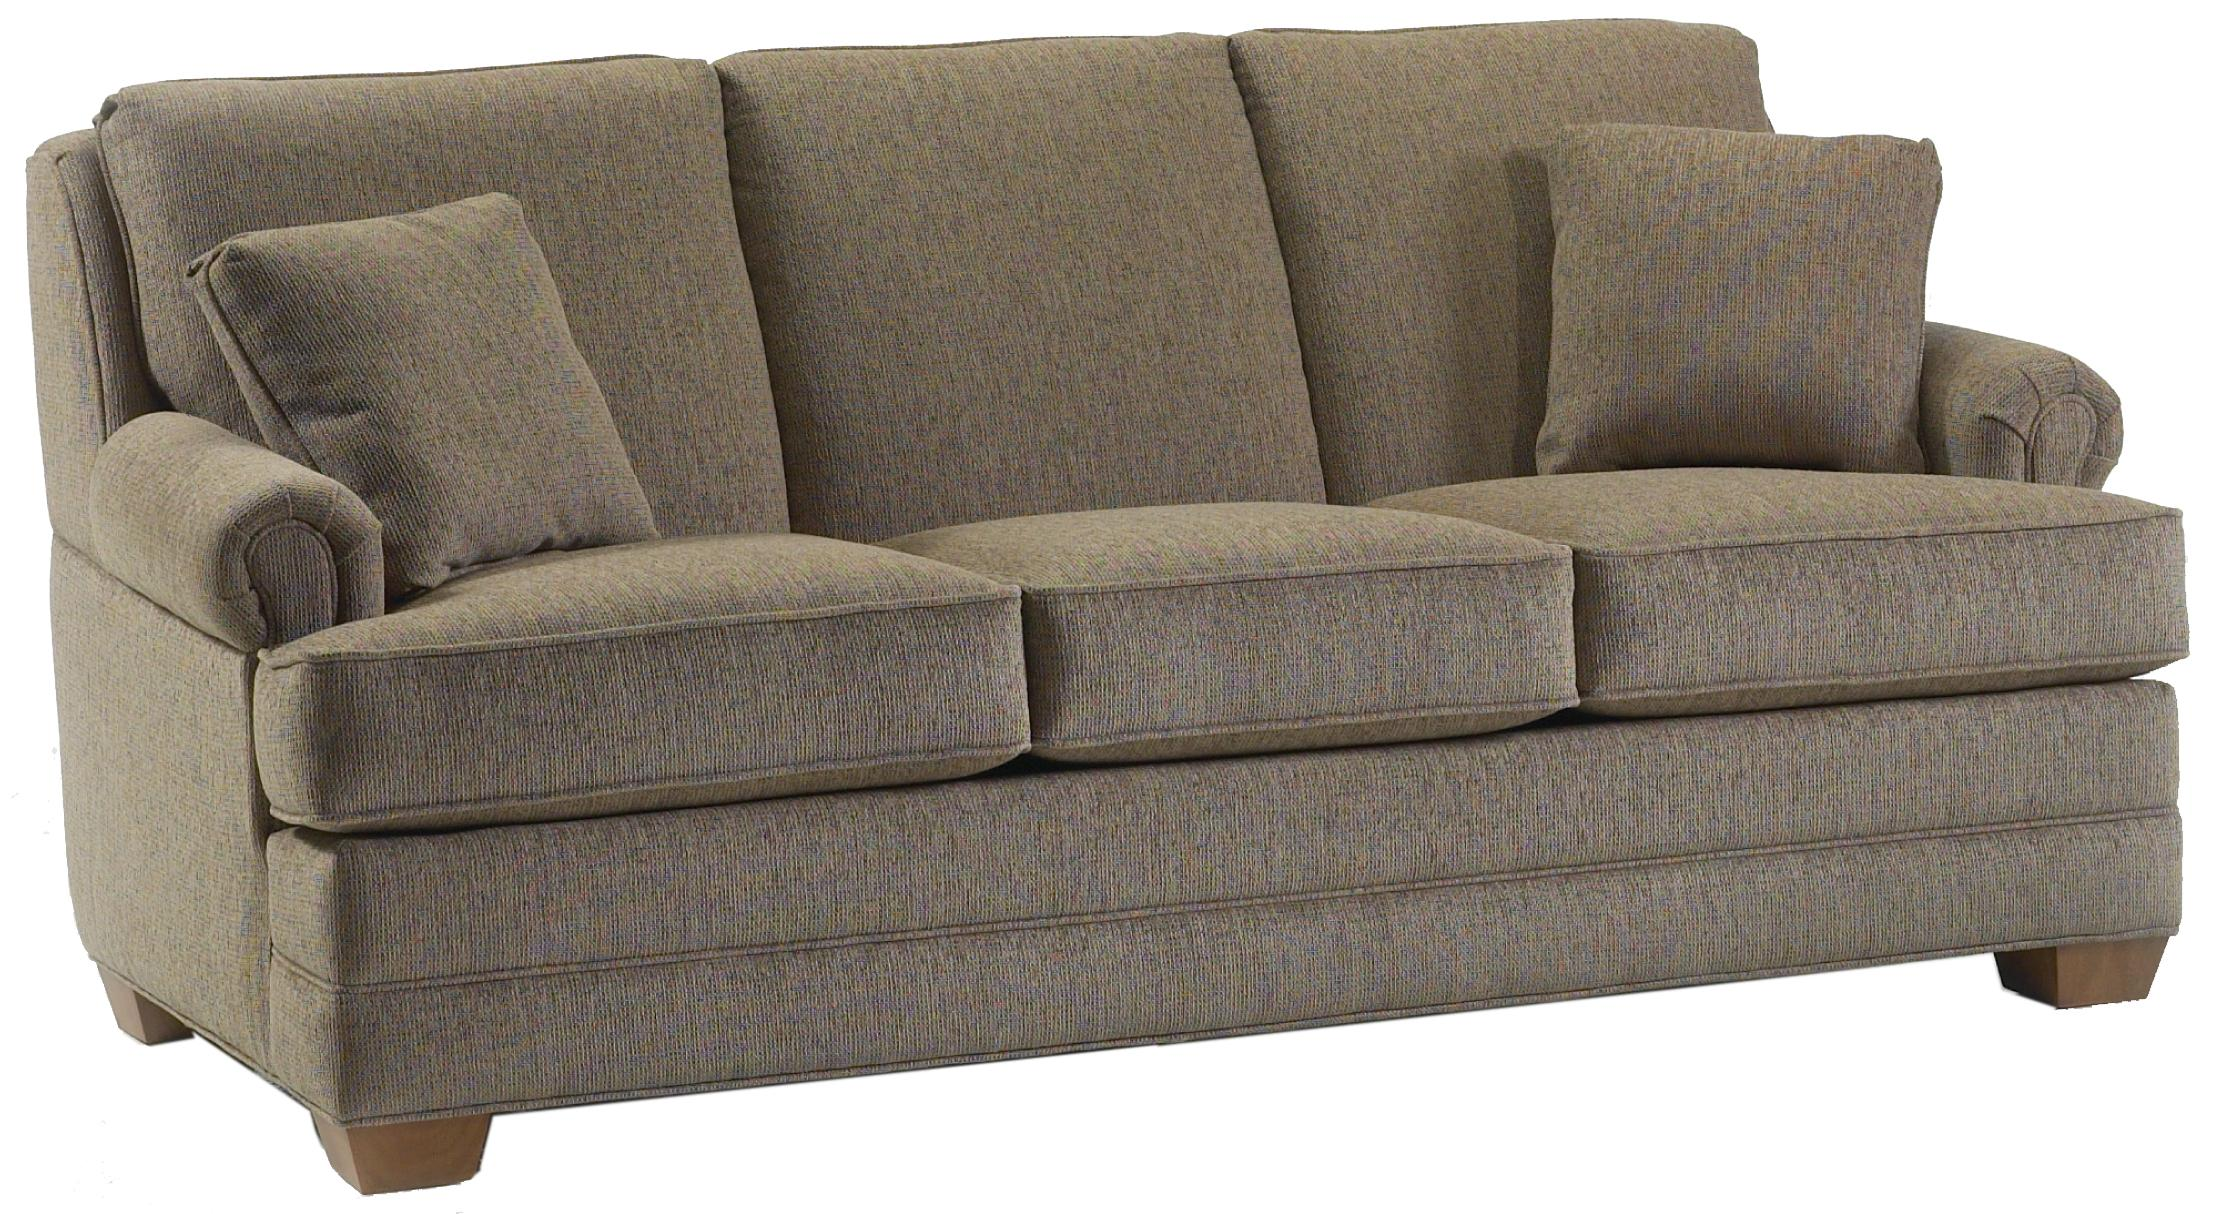 696 Sofa by Lancer at H.L. Stephens